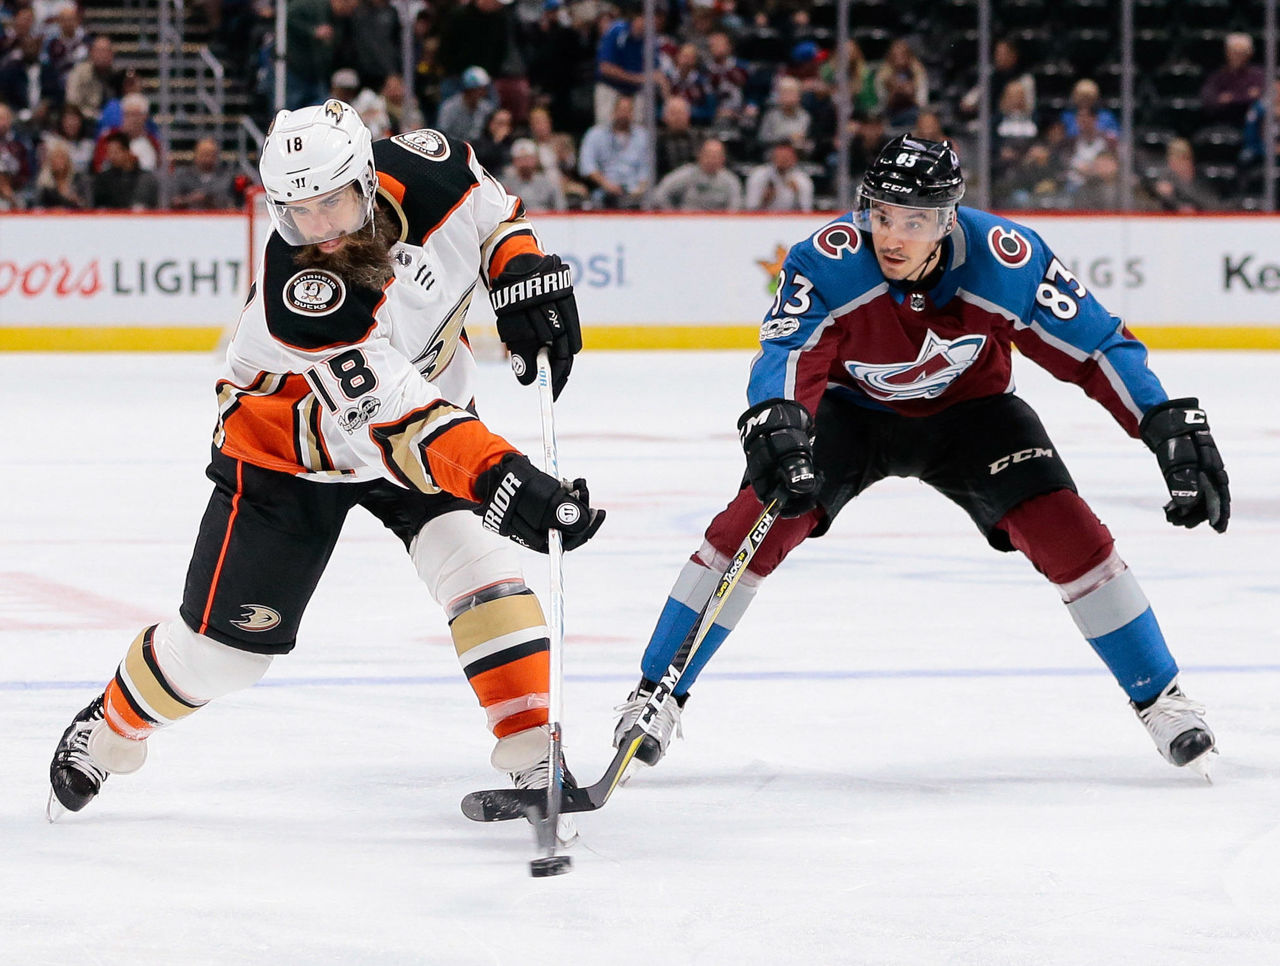 Cropped 2017 10 14t021009z 1365217210 nocid rtrmadp 3 nhl anaheim ducks at colorado avalanche